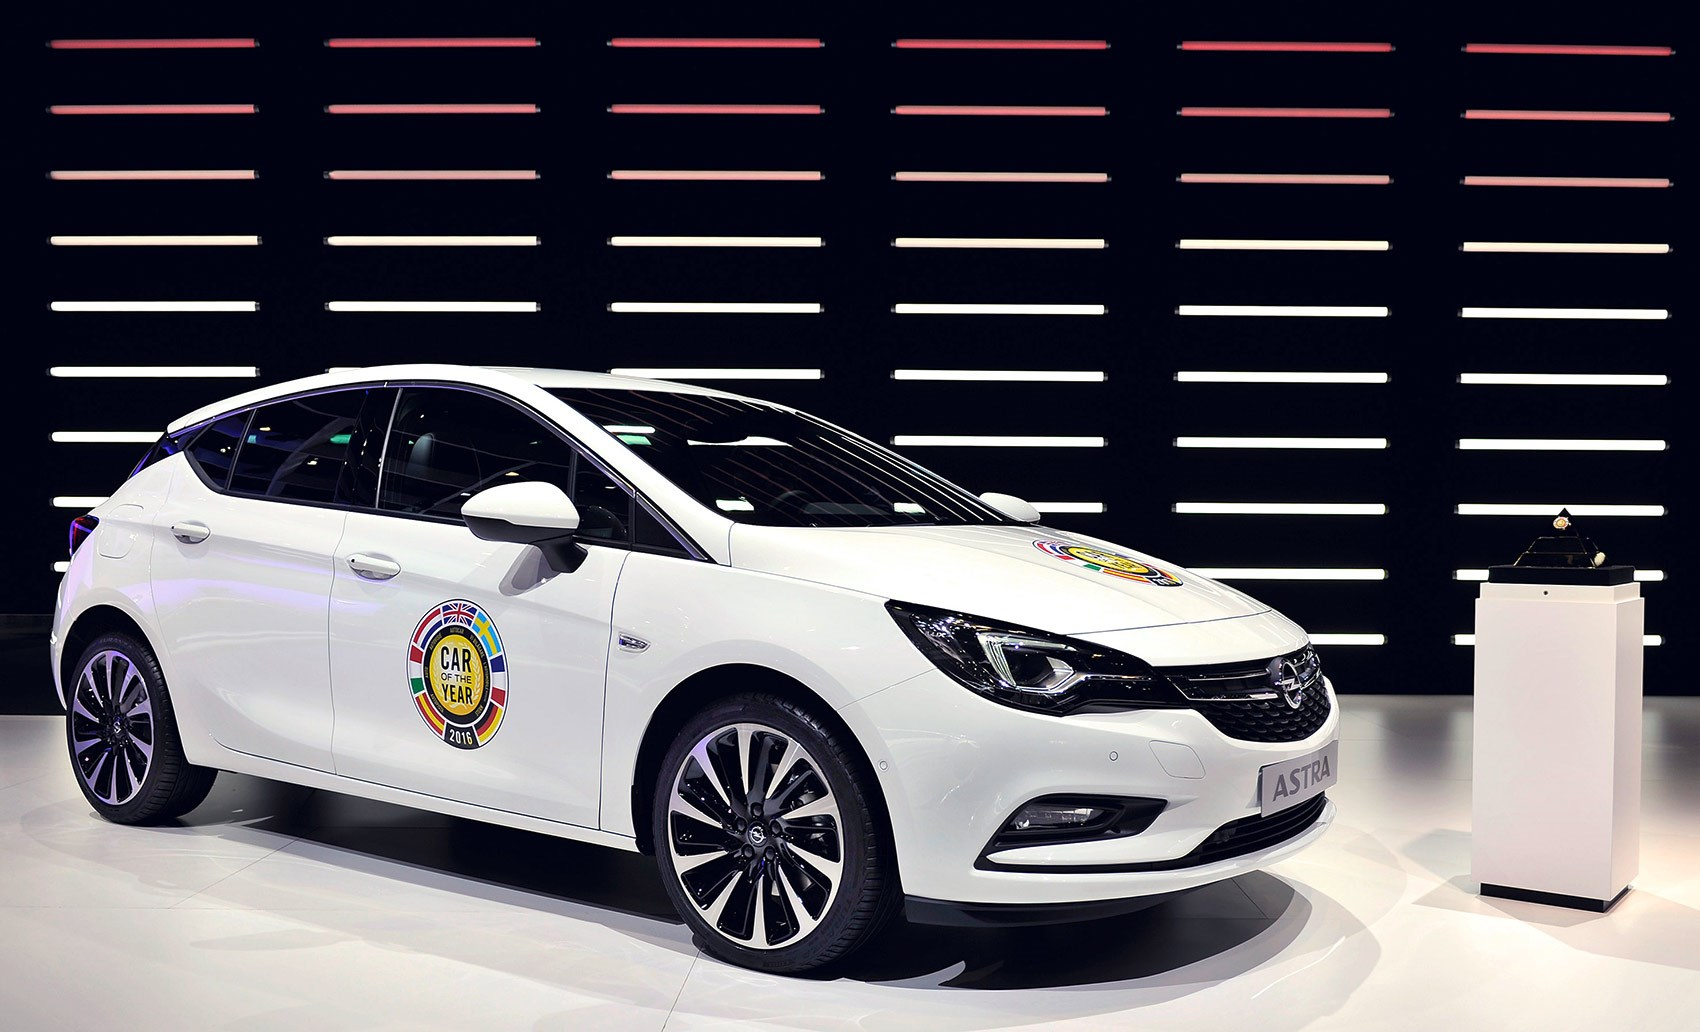 Against The Best Of Germany Sweden And An British Built Astra Won Day We Salute It